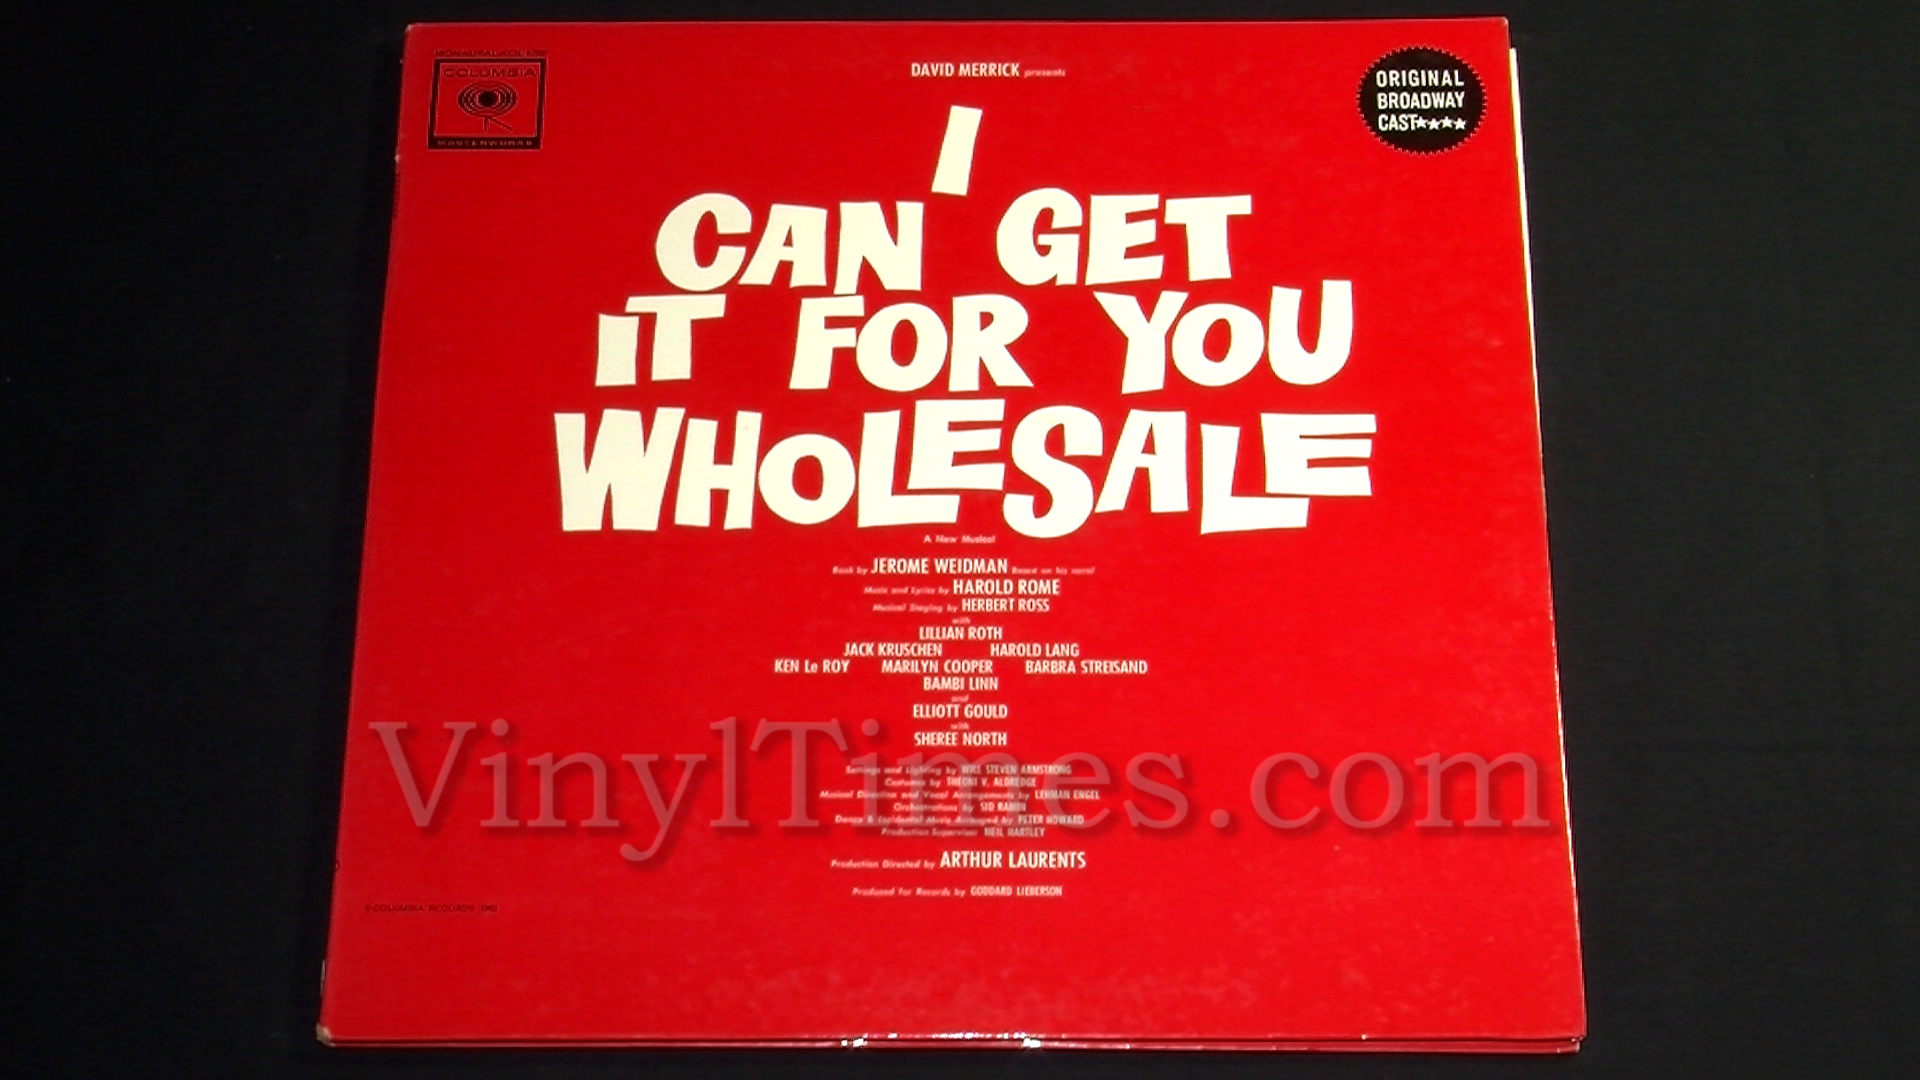 """Broadway - """"I Can Get It For You Wholesale"""" Vinyl LP Record Album gatefold cover"""